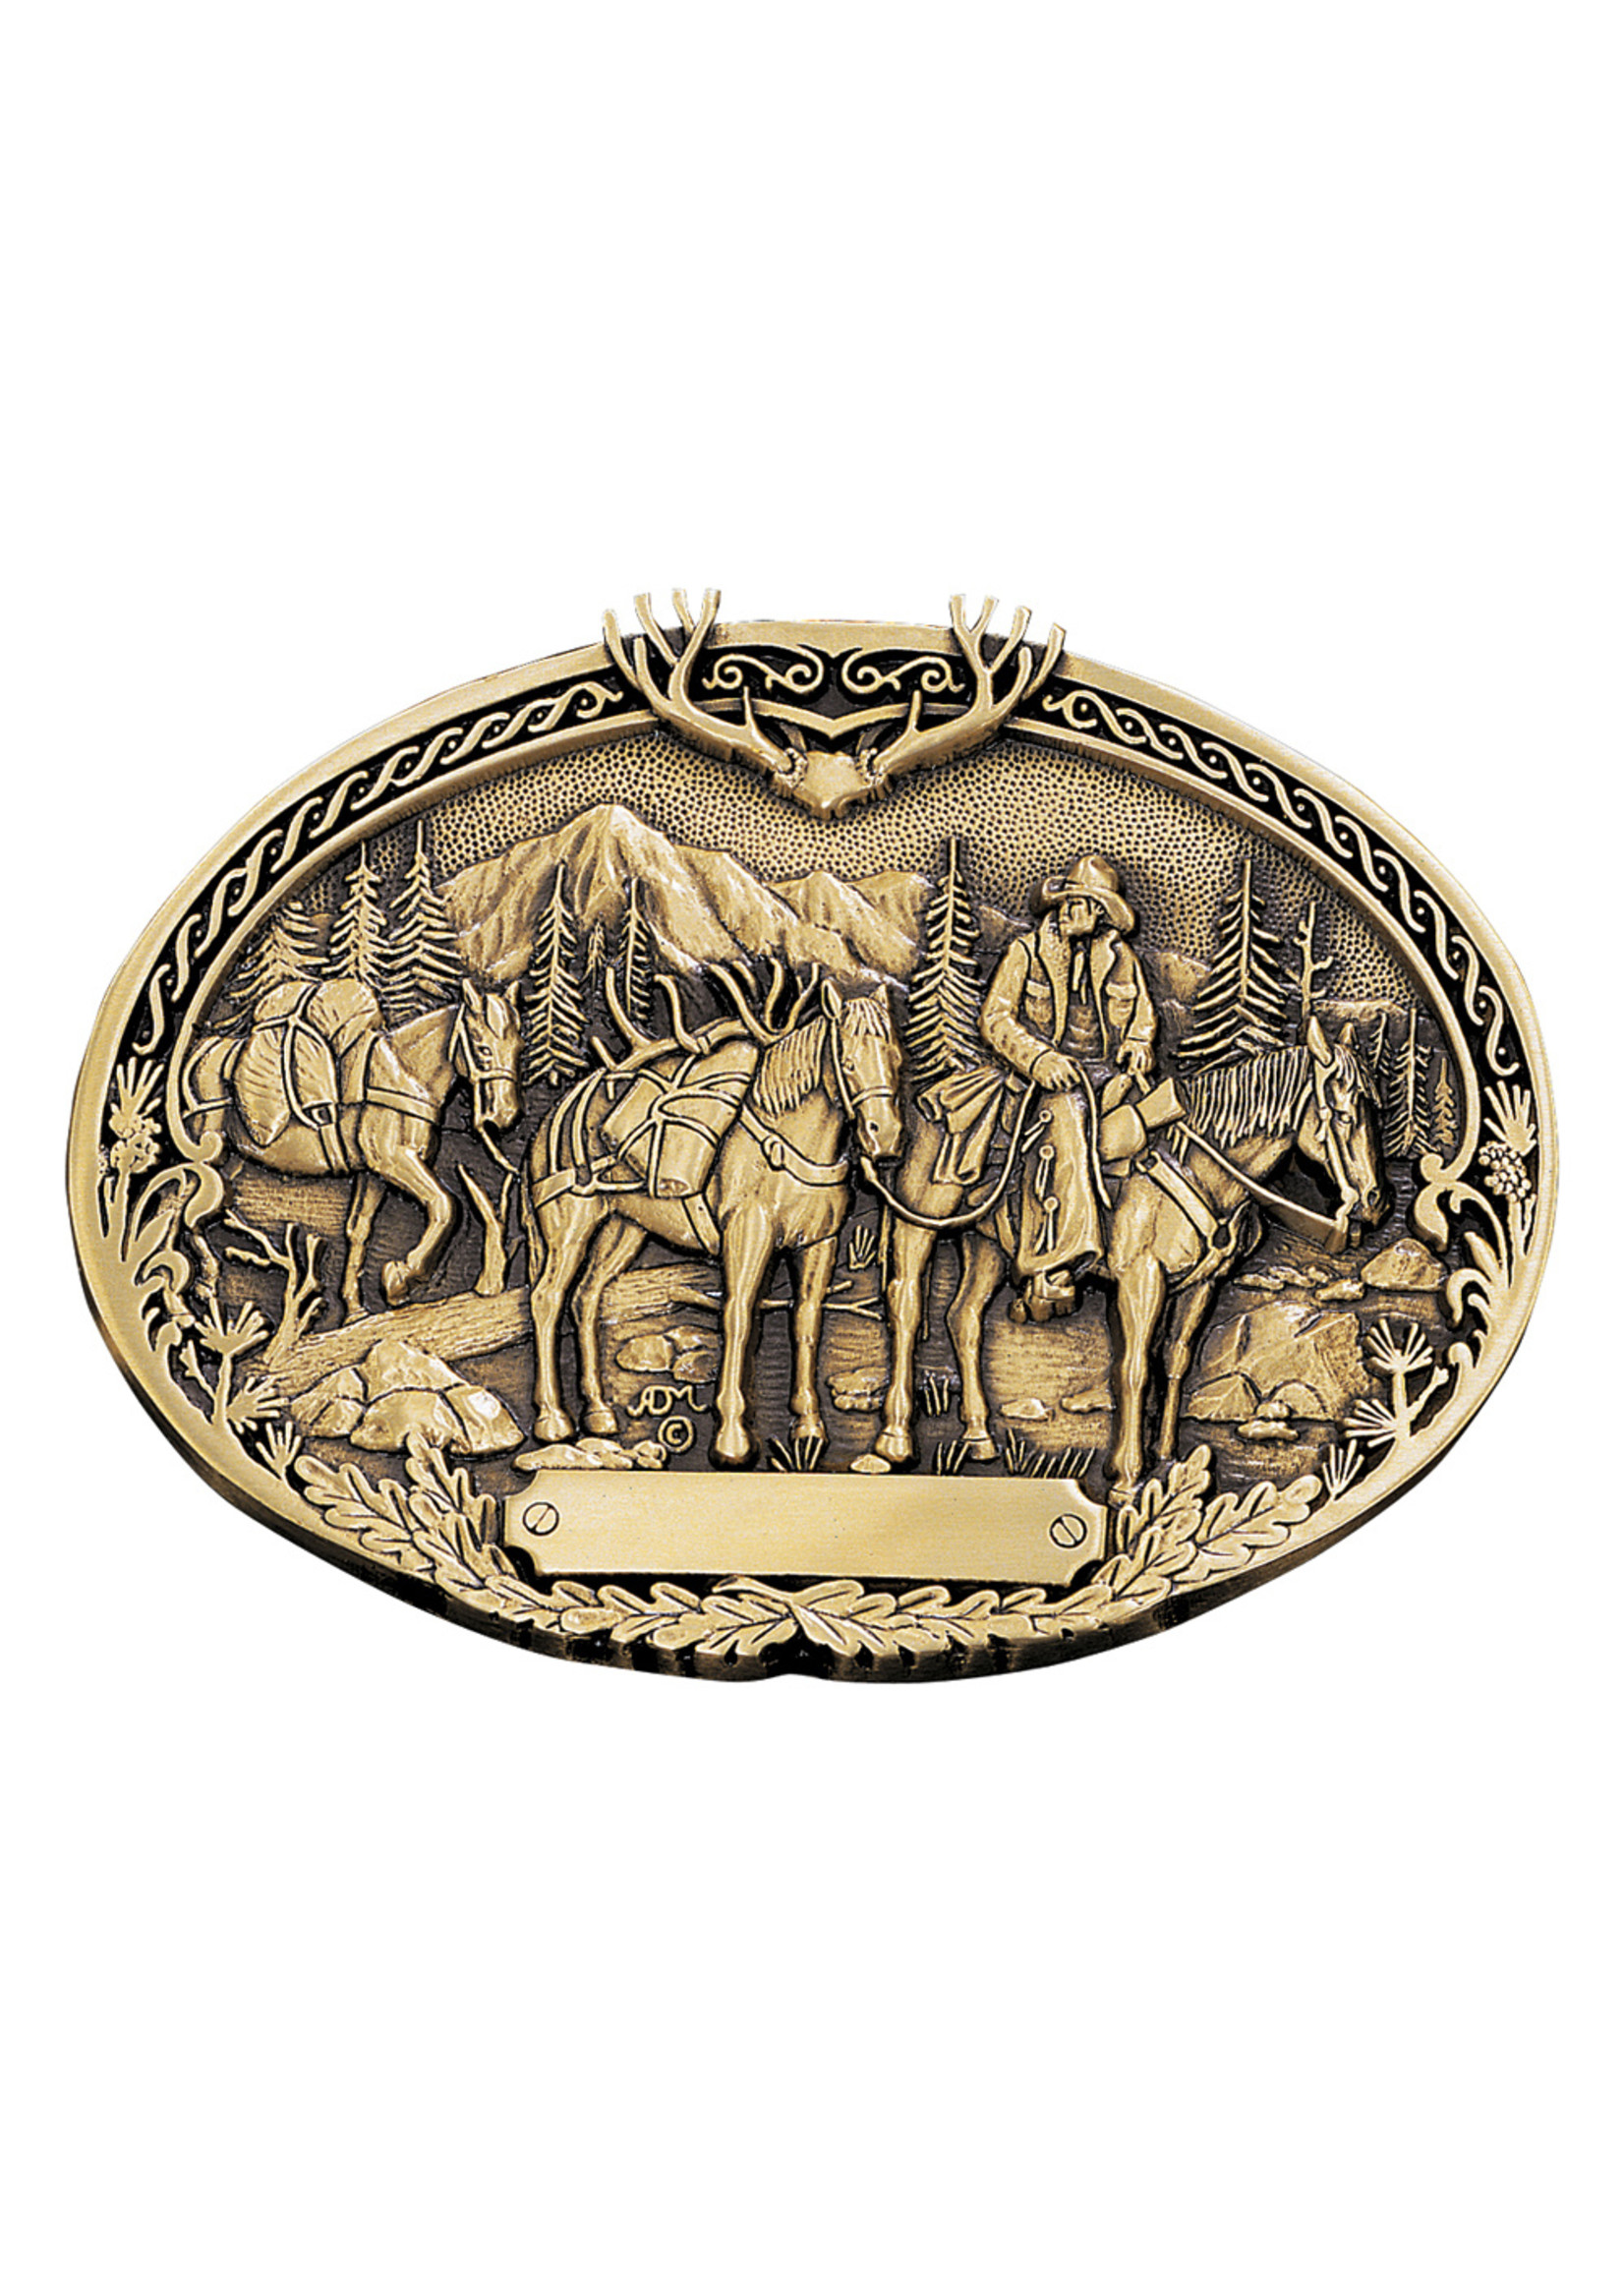 Attiude Buckles Pack Horses and Rider Brass Heritage Attitude Belt Buckle 60789C